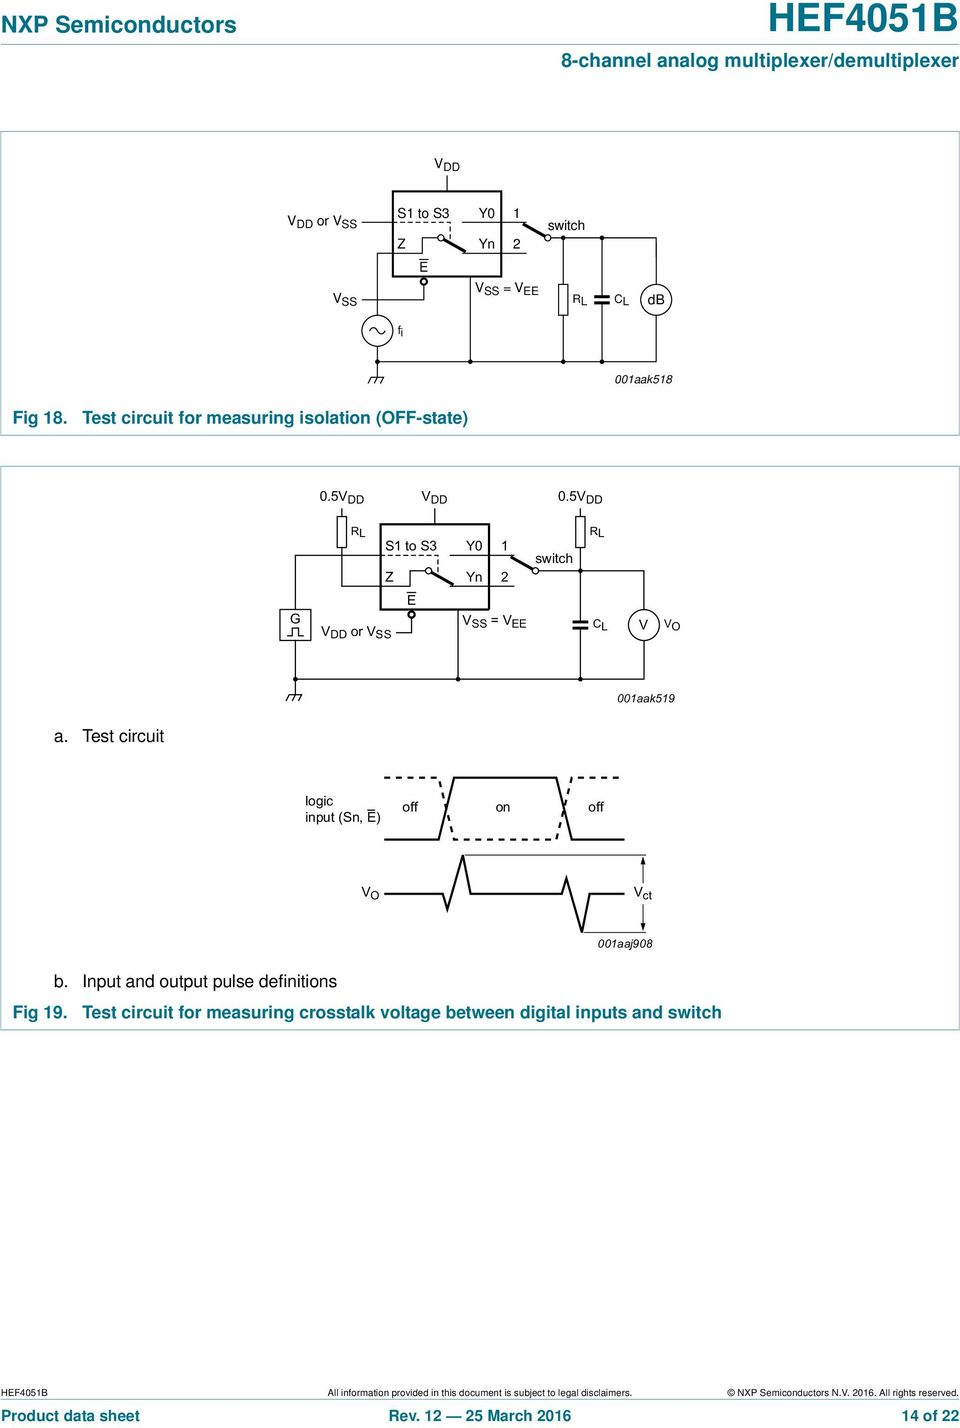 Test circuit for measuring crosstalk voltage between digital inputs and switch All information provided in this